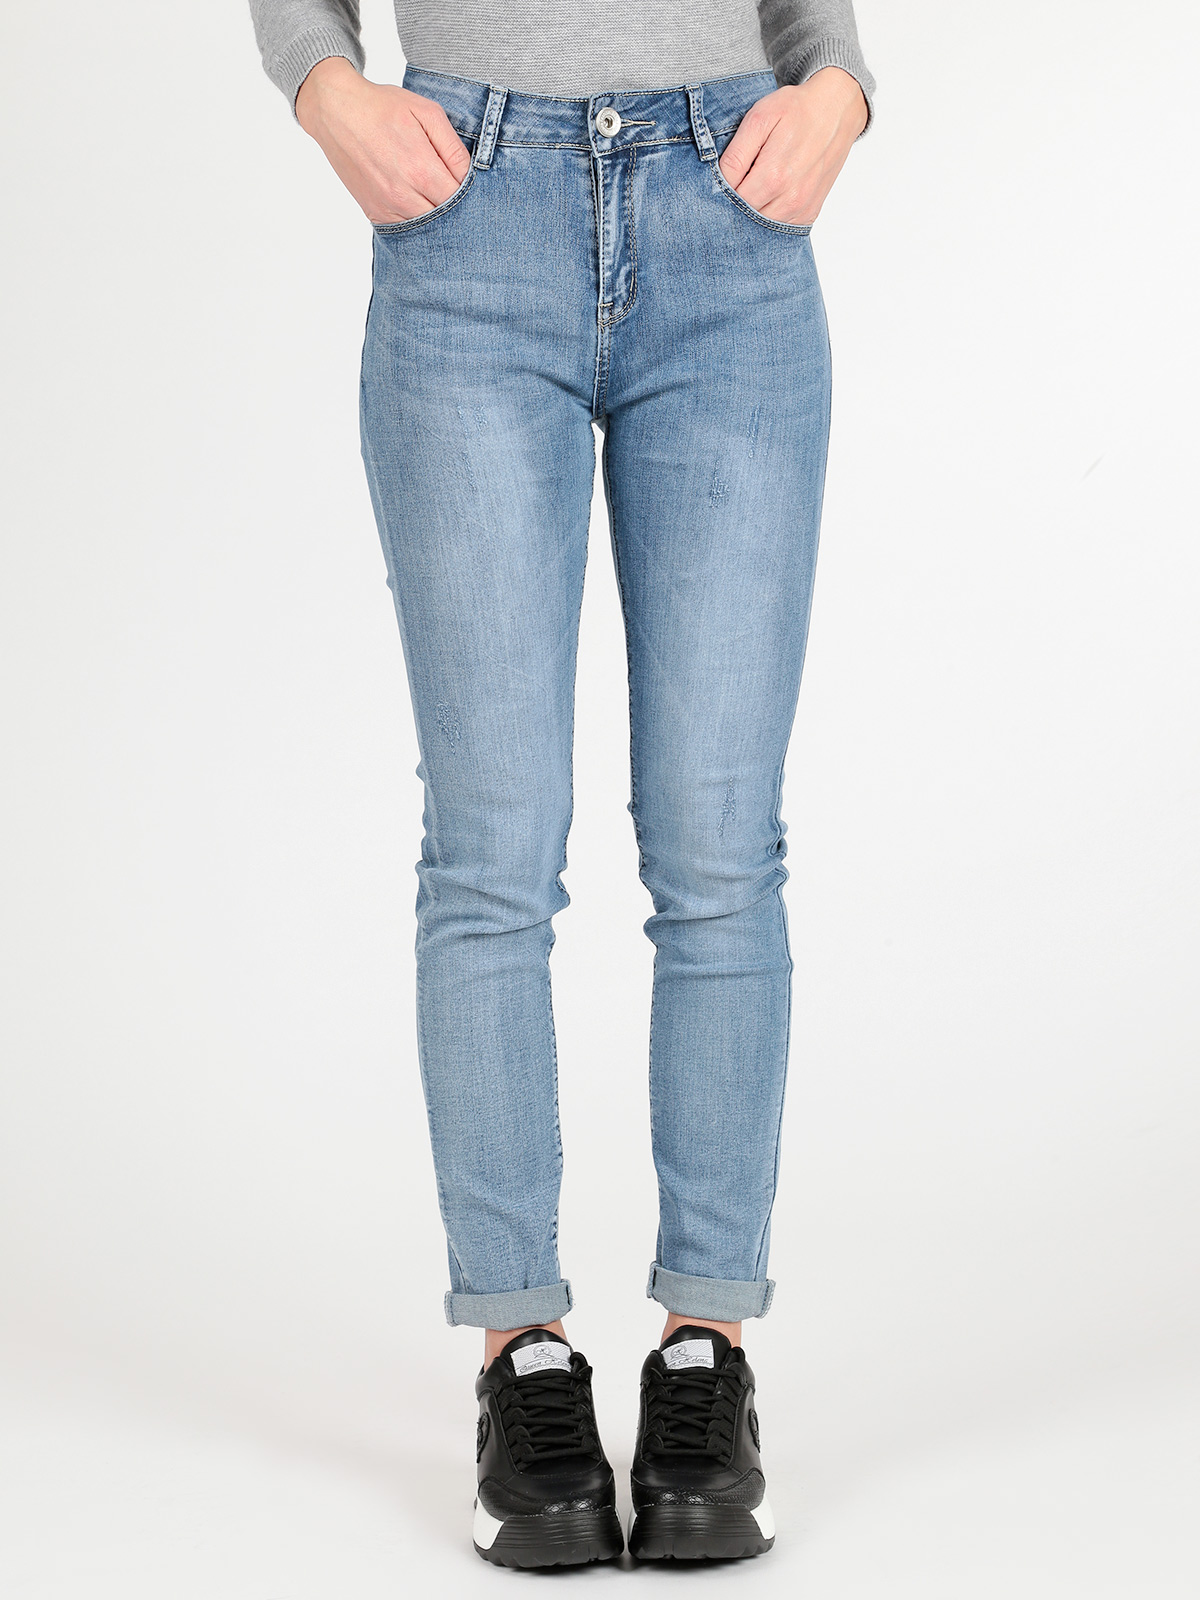 FIONINA JEANS Jeans Woman 2019 Spring New Slim Matching Broad-legged Straight